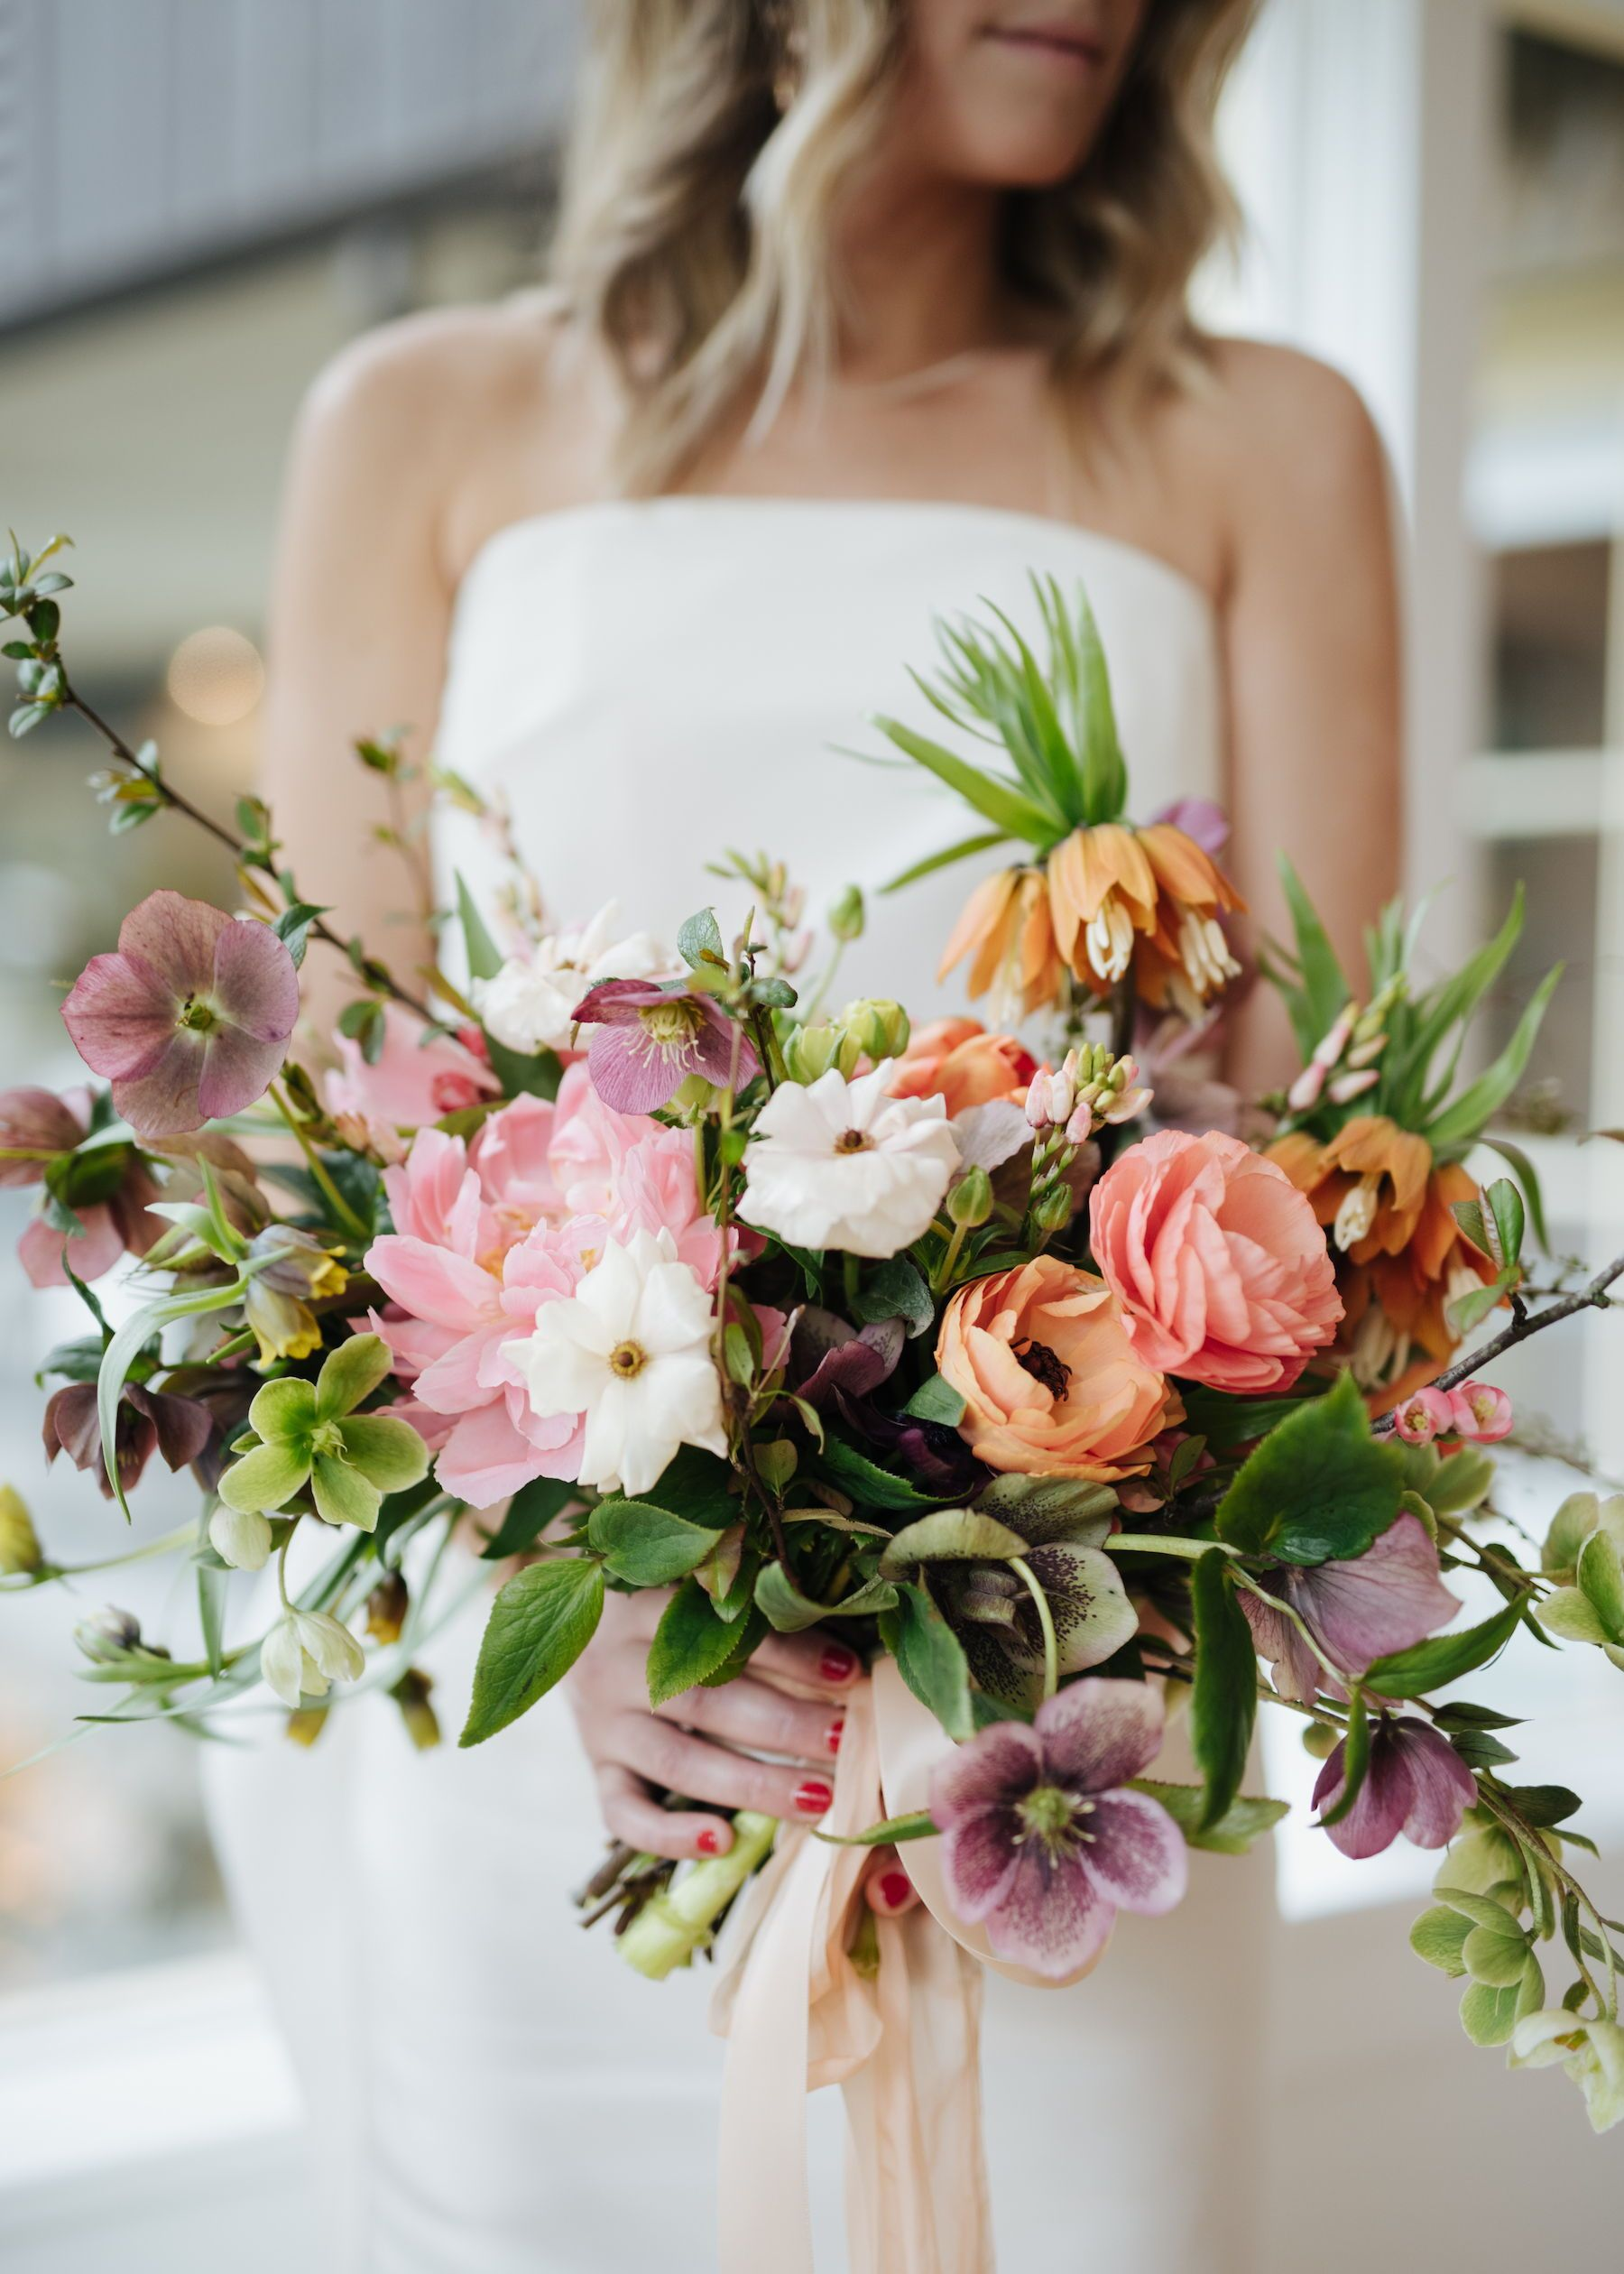 Rustic Spring Wedding Bouquets Ideas